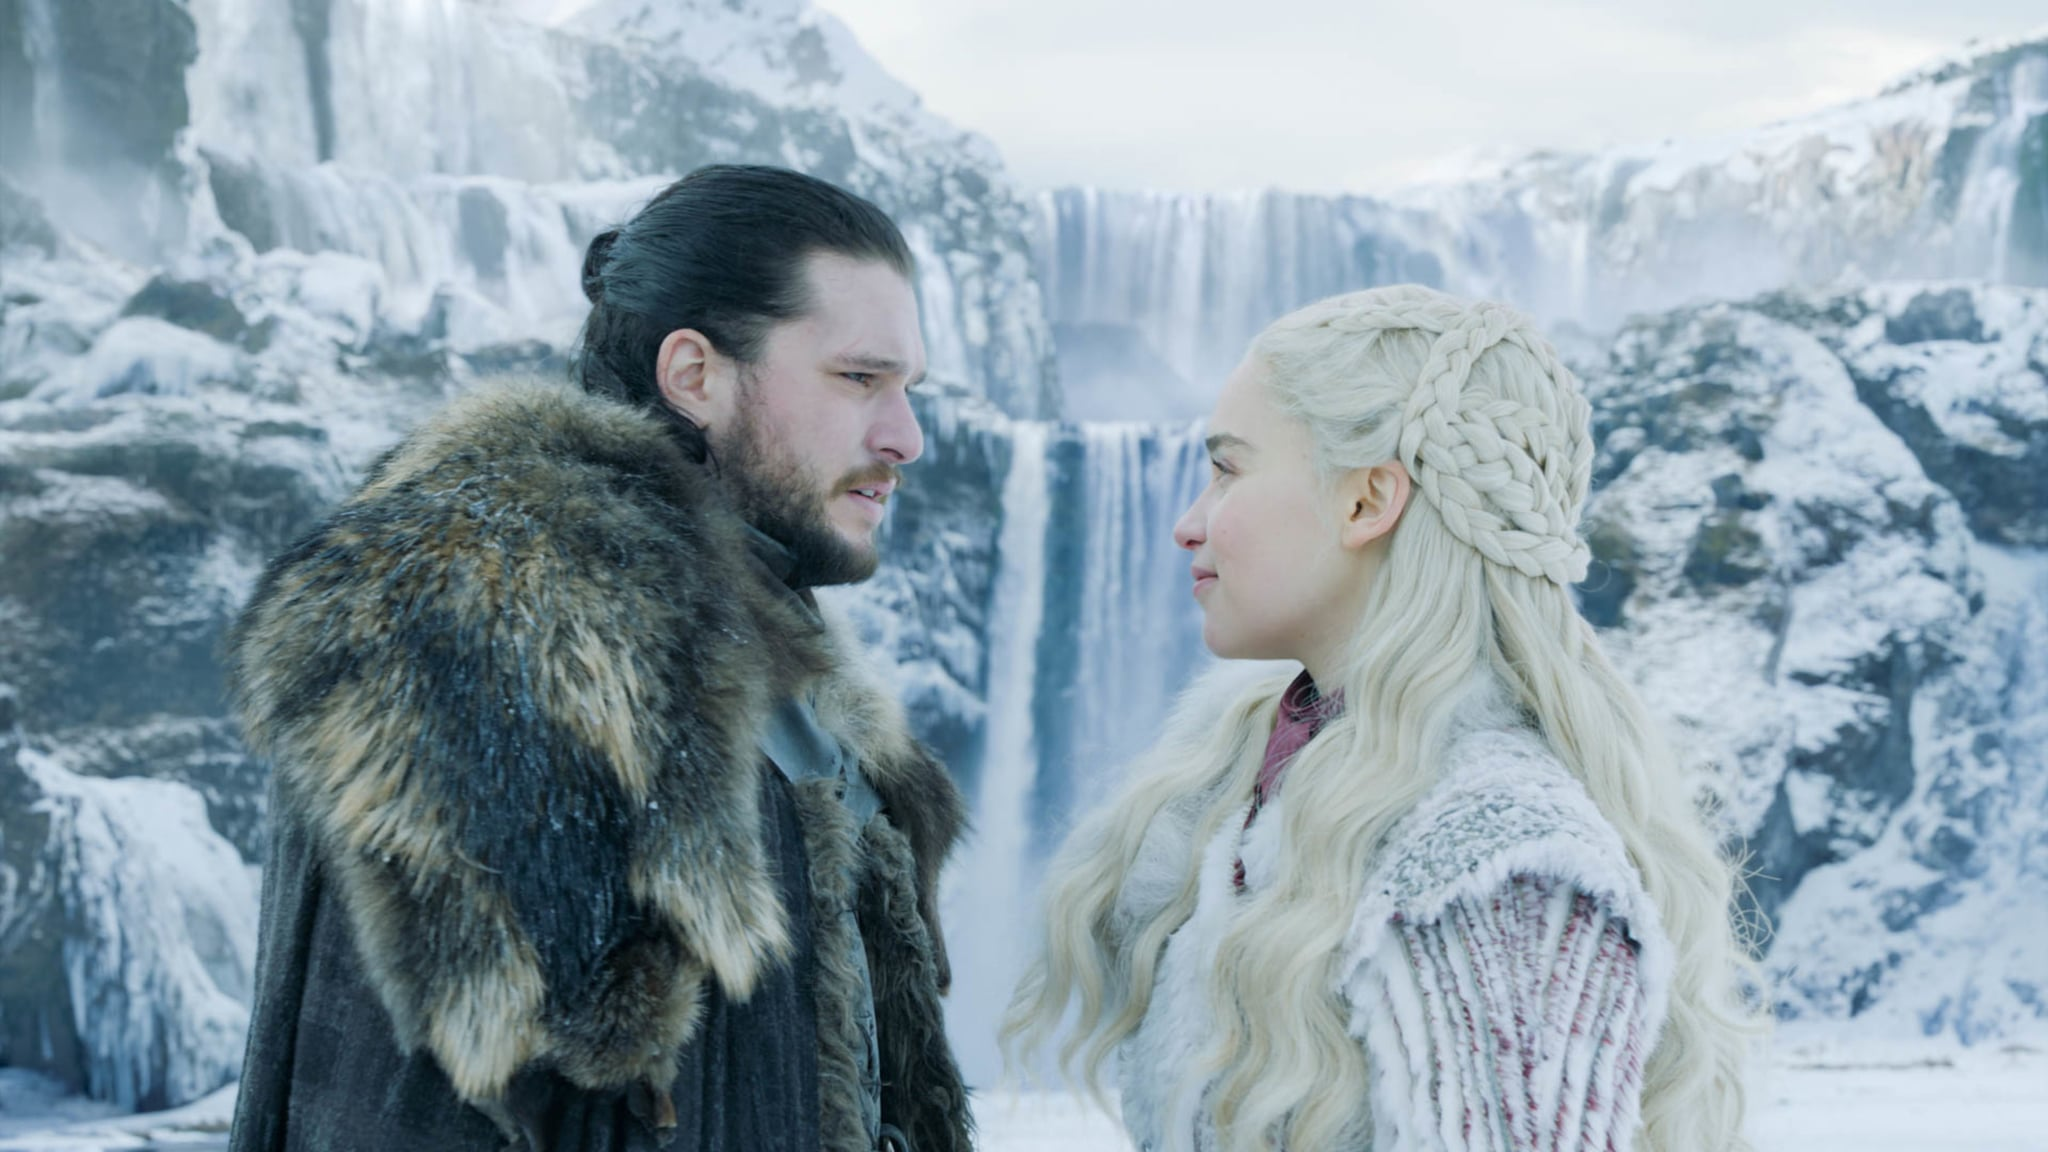 Will Jon Snow Kill Daenerys In The Game Of Thrones Finale